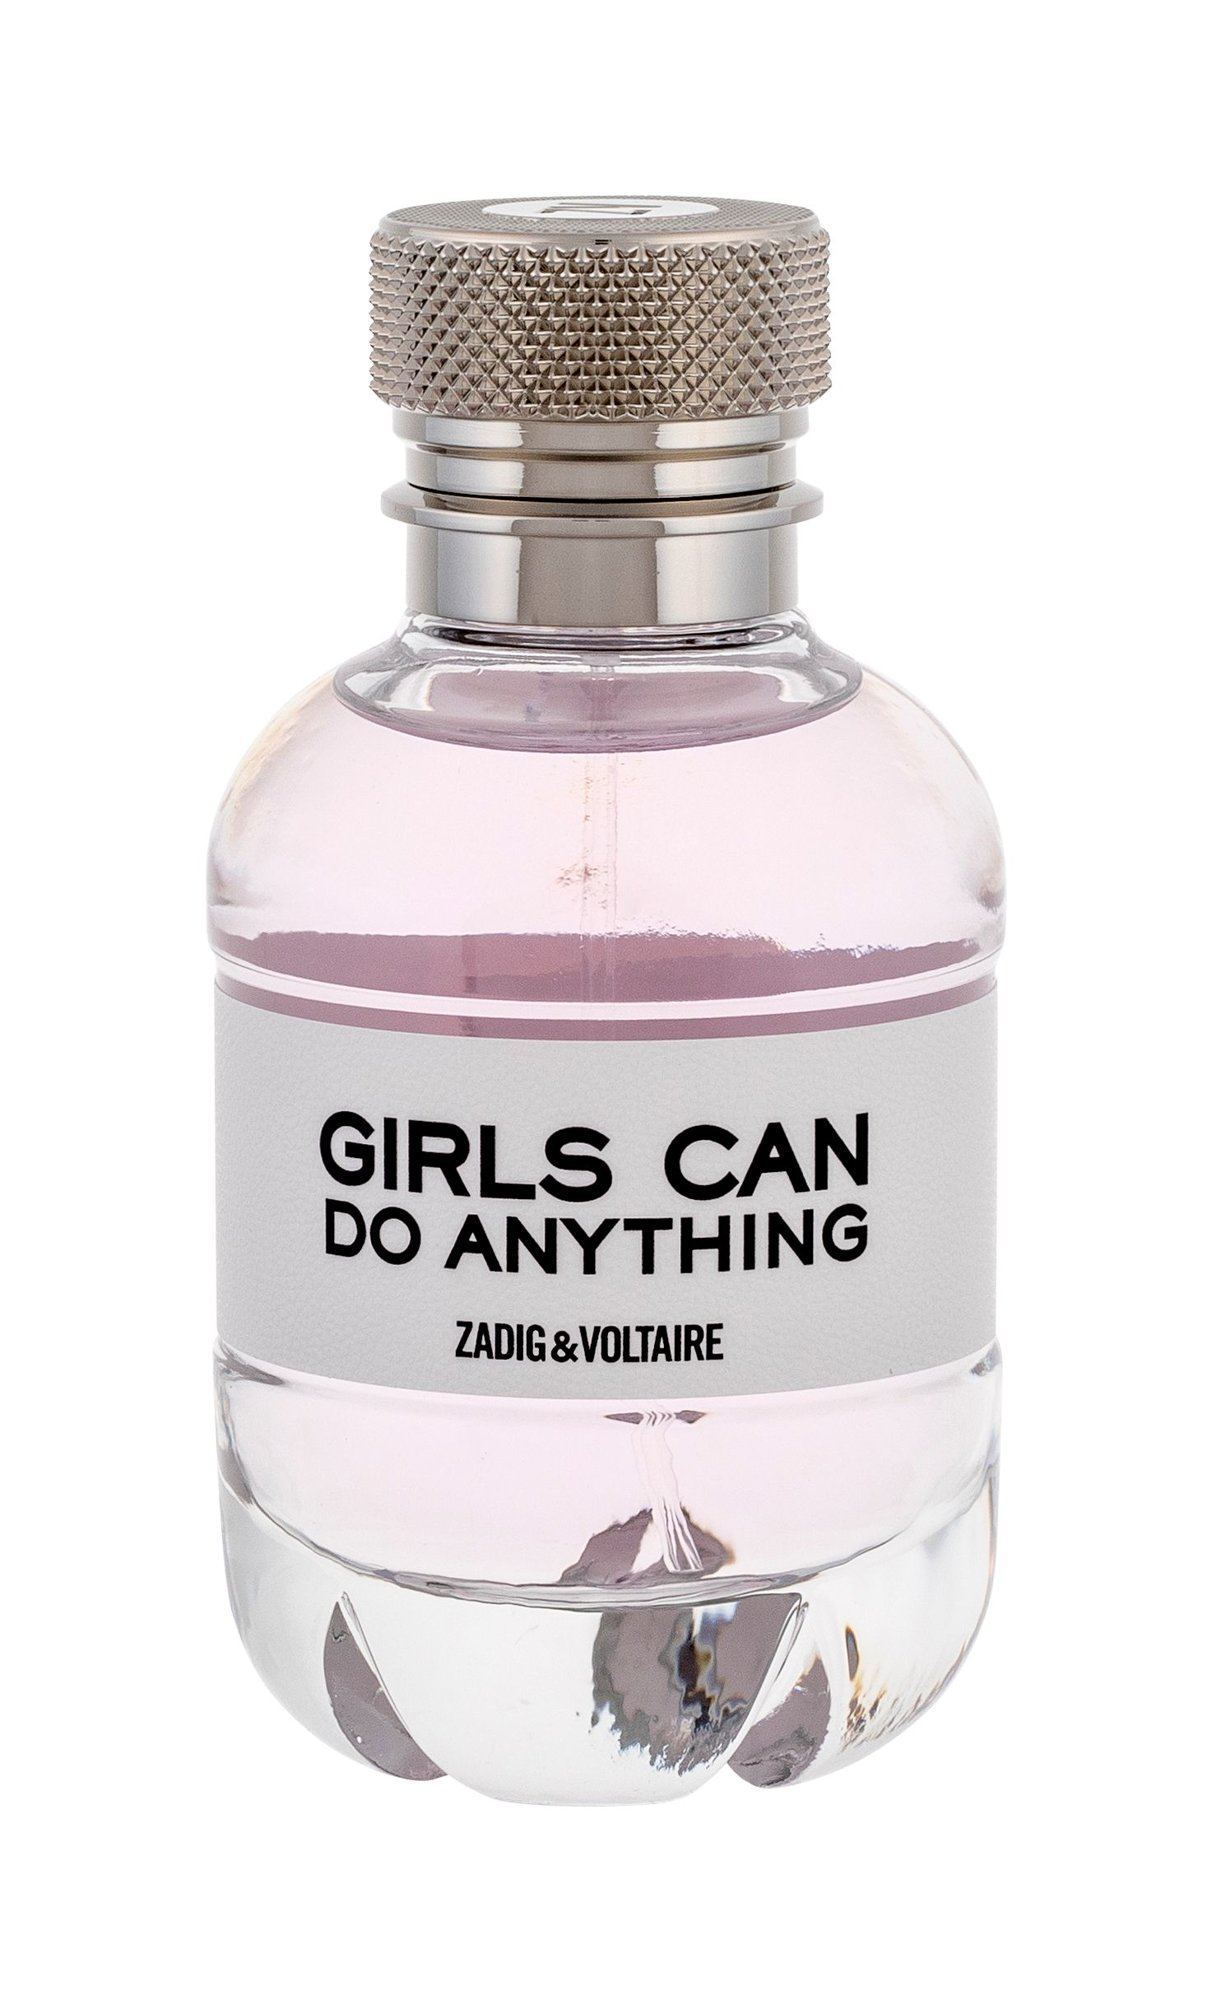 Zadig & Voltaire Girls Can Do Anything, Parfumovaná voda 30ml